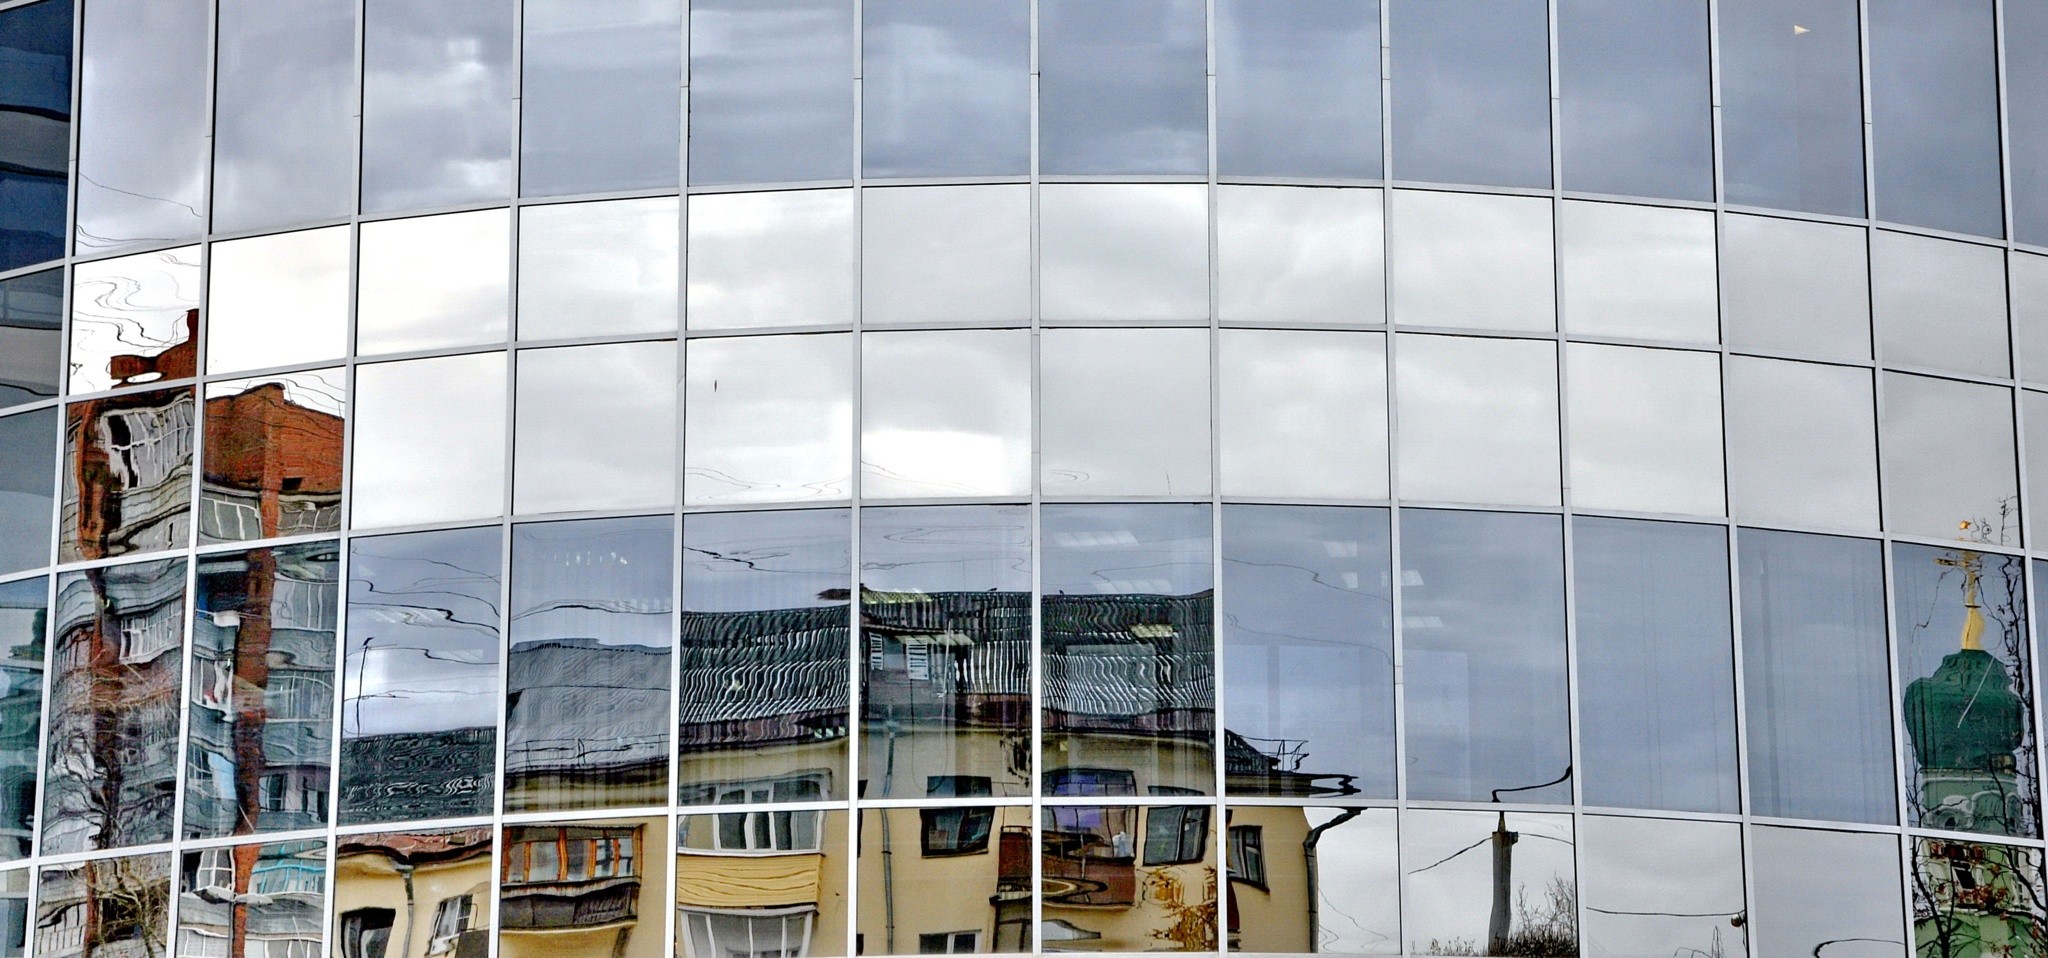 Reflection (old and new) by vadsever58